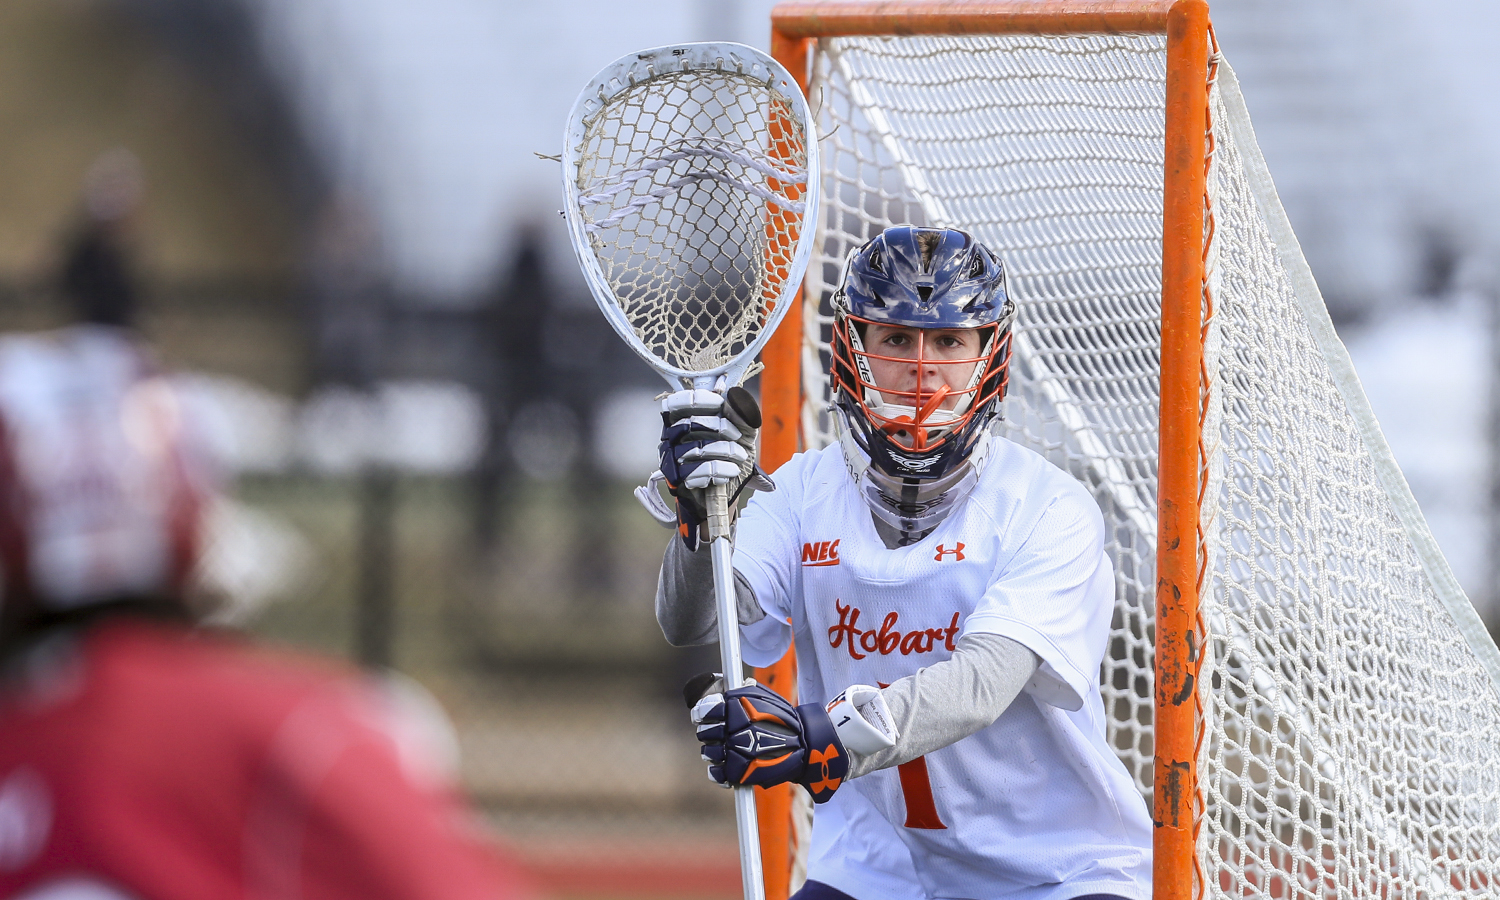 Sam Lucchesi '20 prepares for a shot on goal during Hobart's game against St. Joseph's University.